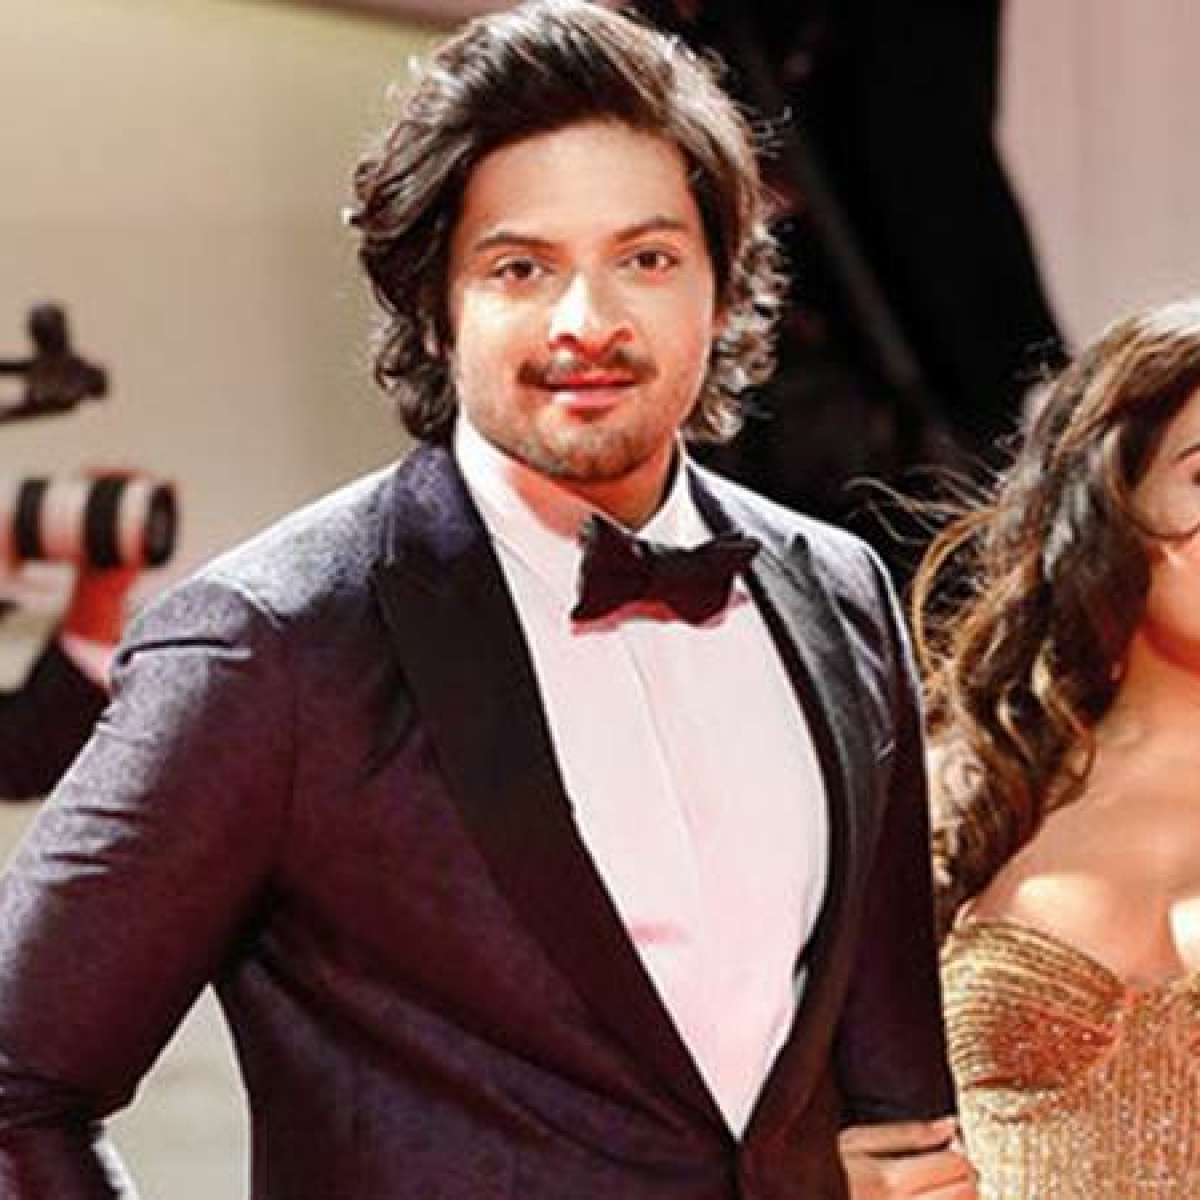 'You guys decide, we'll show up': Richa Chaddha rubbishes marriage rumours with Ali Fazal with an epic post